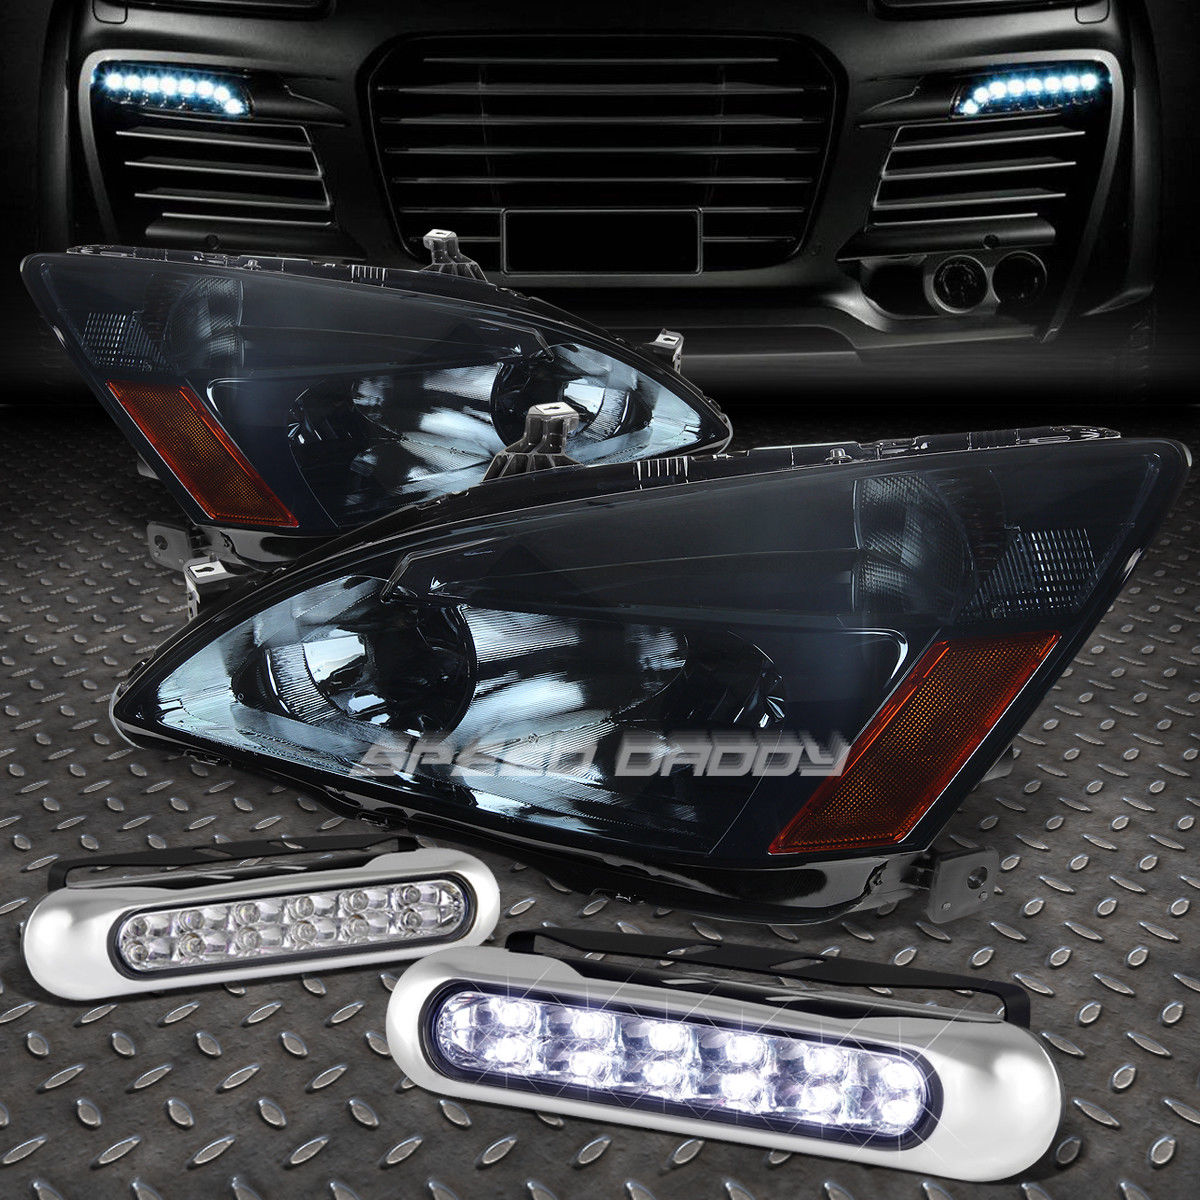 フォグライト SMOKED HOUSING HEADLIGHT AMBER CORNER+12 LED GRILL FOG LIGHT FOR 03-07 ACCORD SMOKED HOUSING HEADLIGHTアンバーコーナー+ 03-07アコーディオン用LEDグリルフォグライト